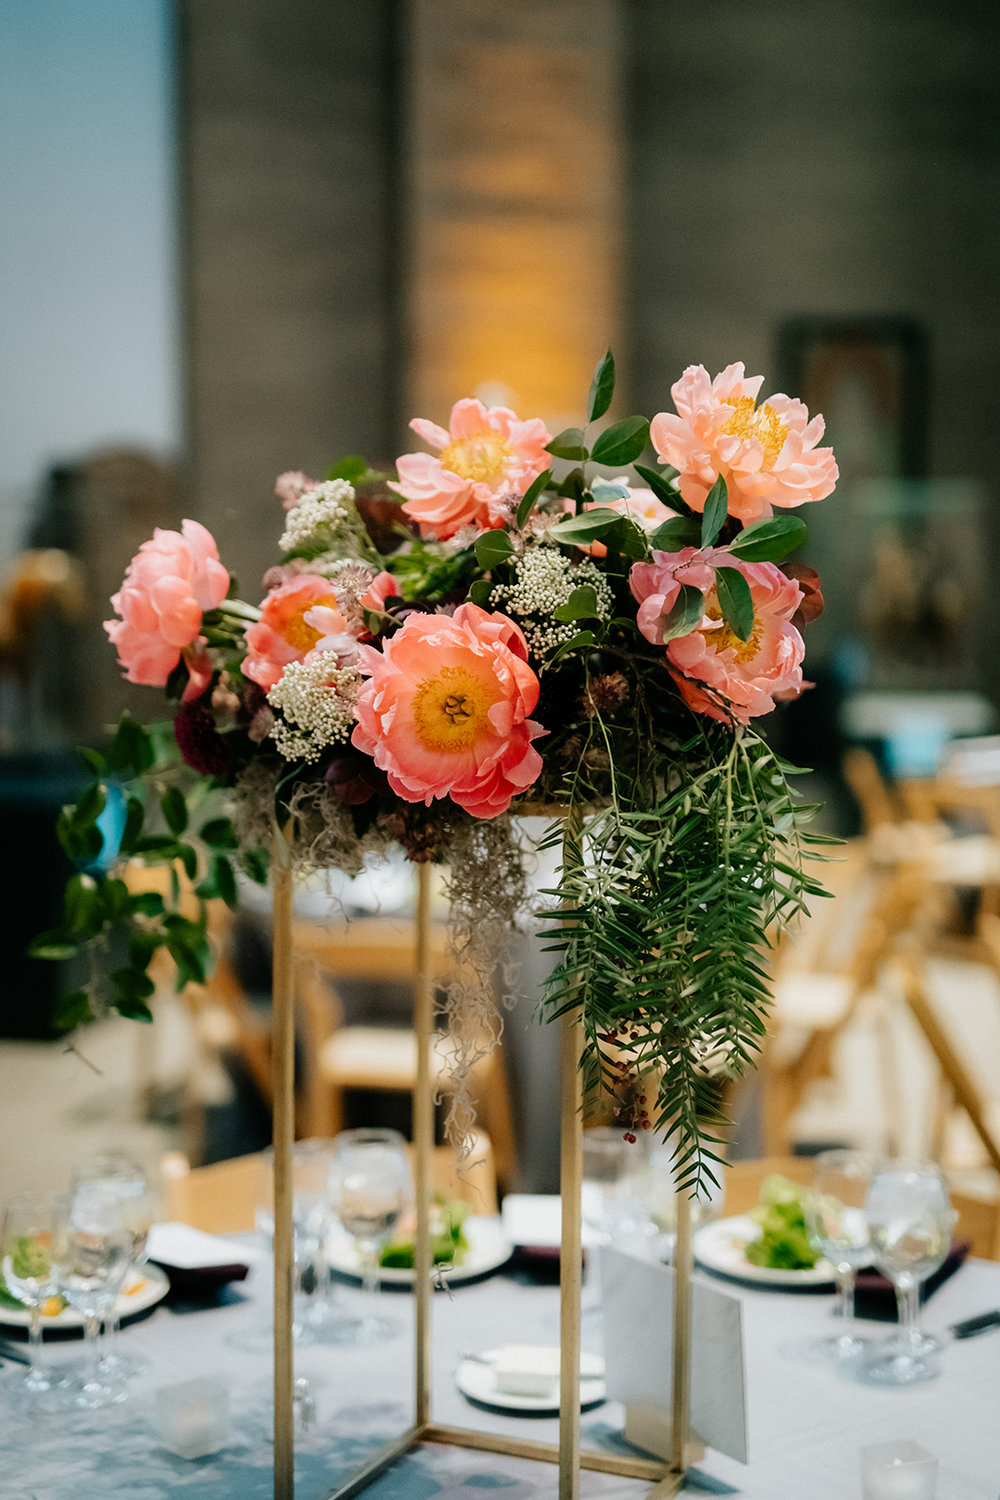 Penn Museum wedding lush organic floral centerpieces with northeast wedding planner Heart & Dash